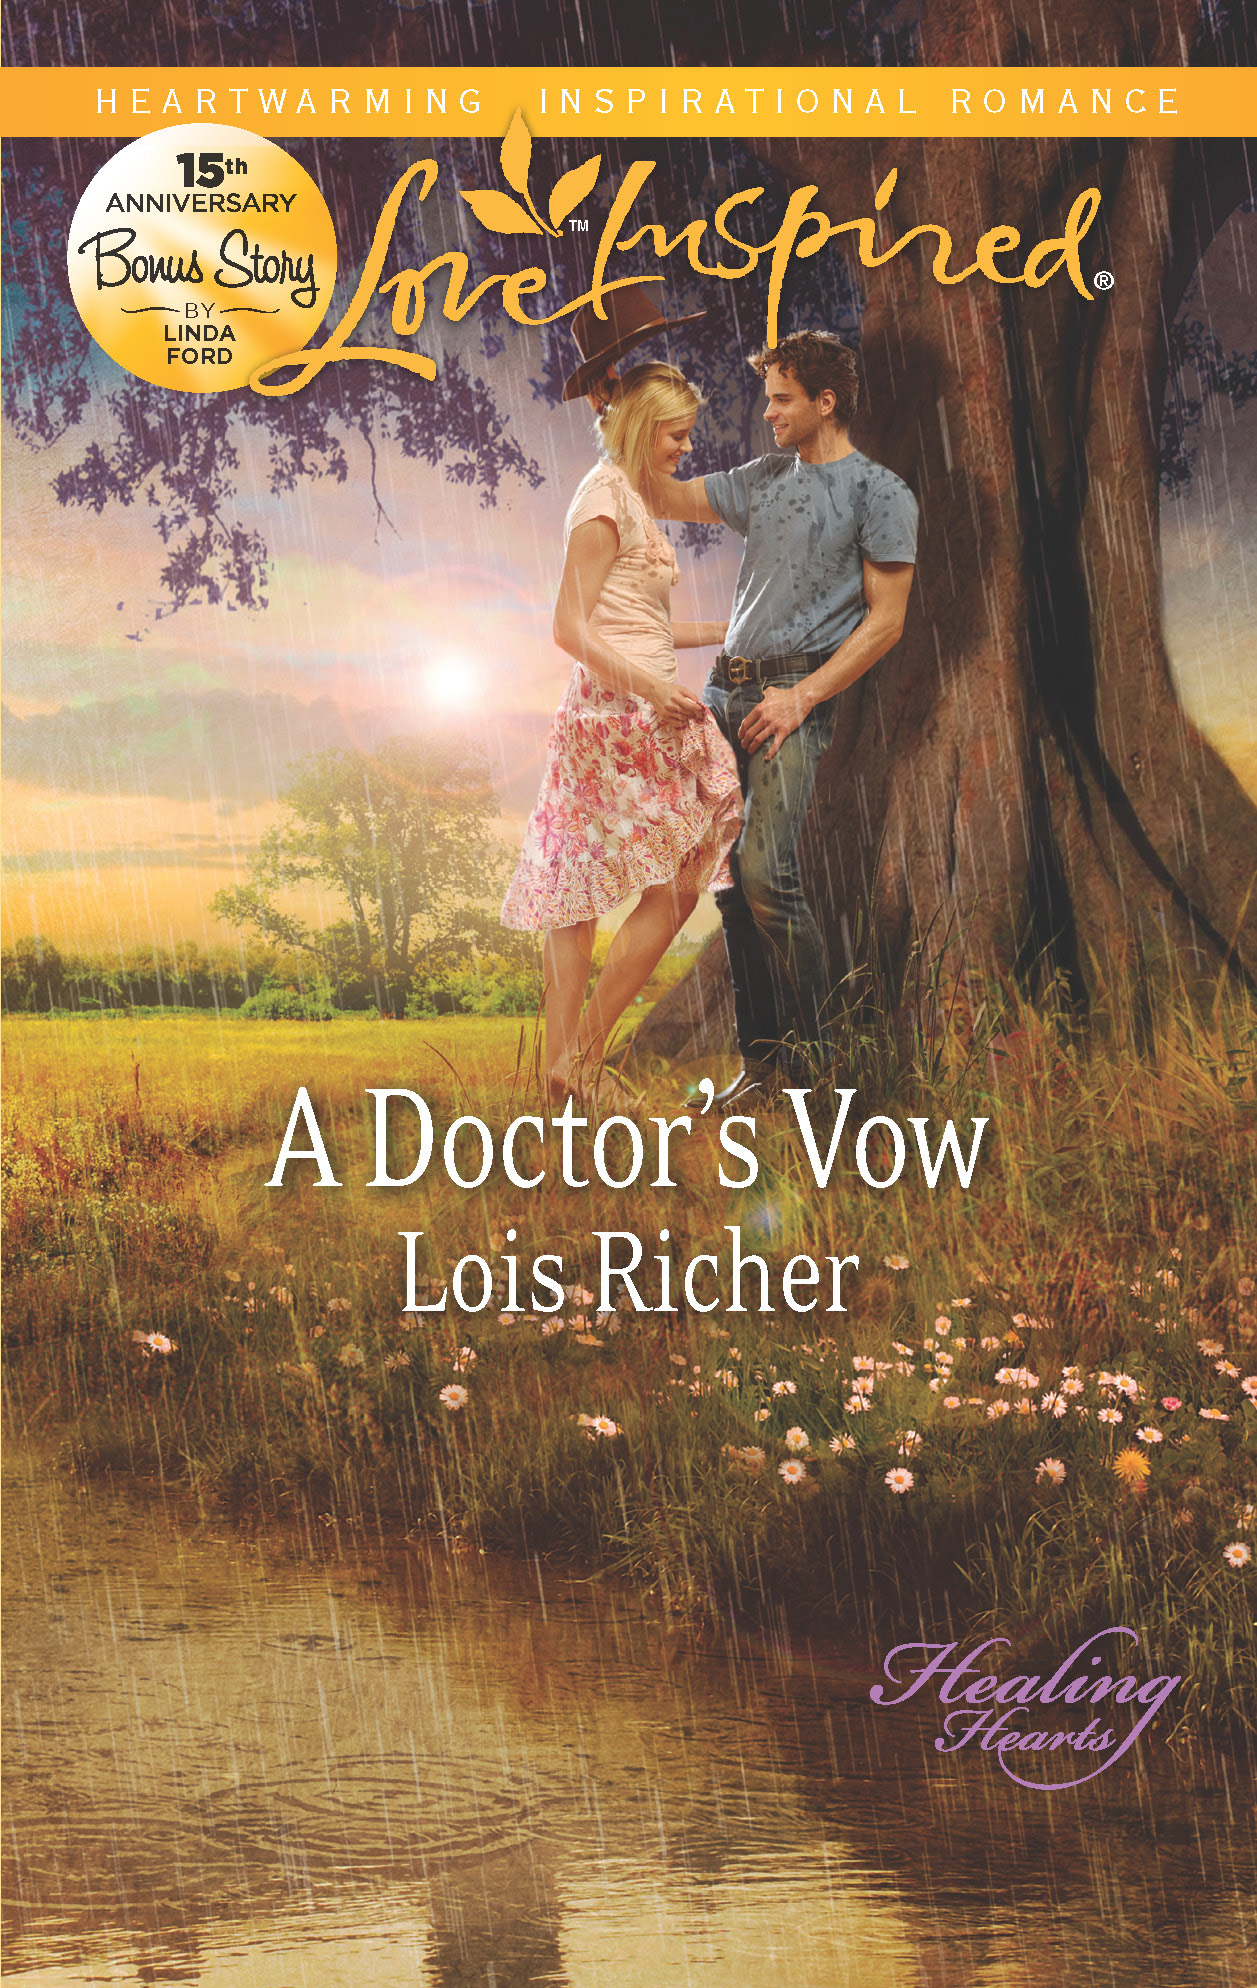 A Doctor's Vow By: Lois Richer